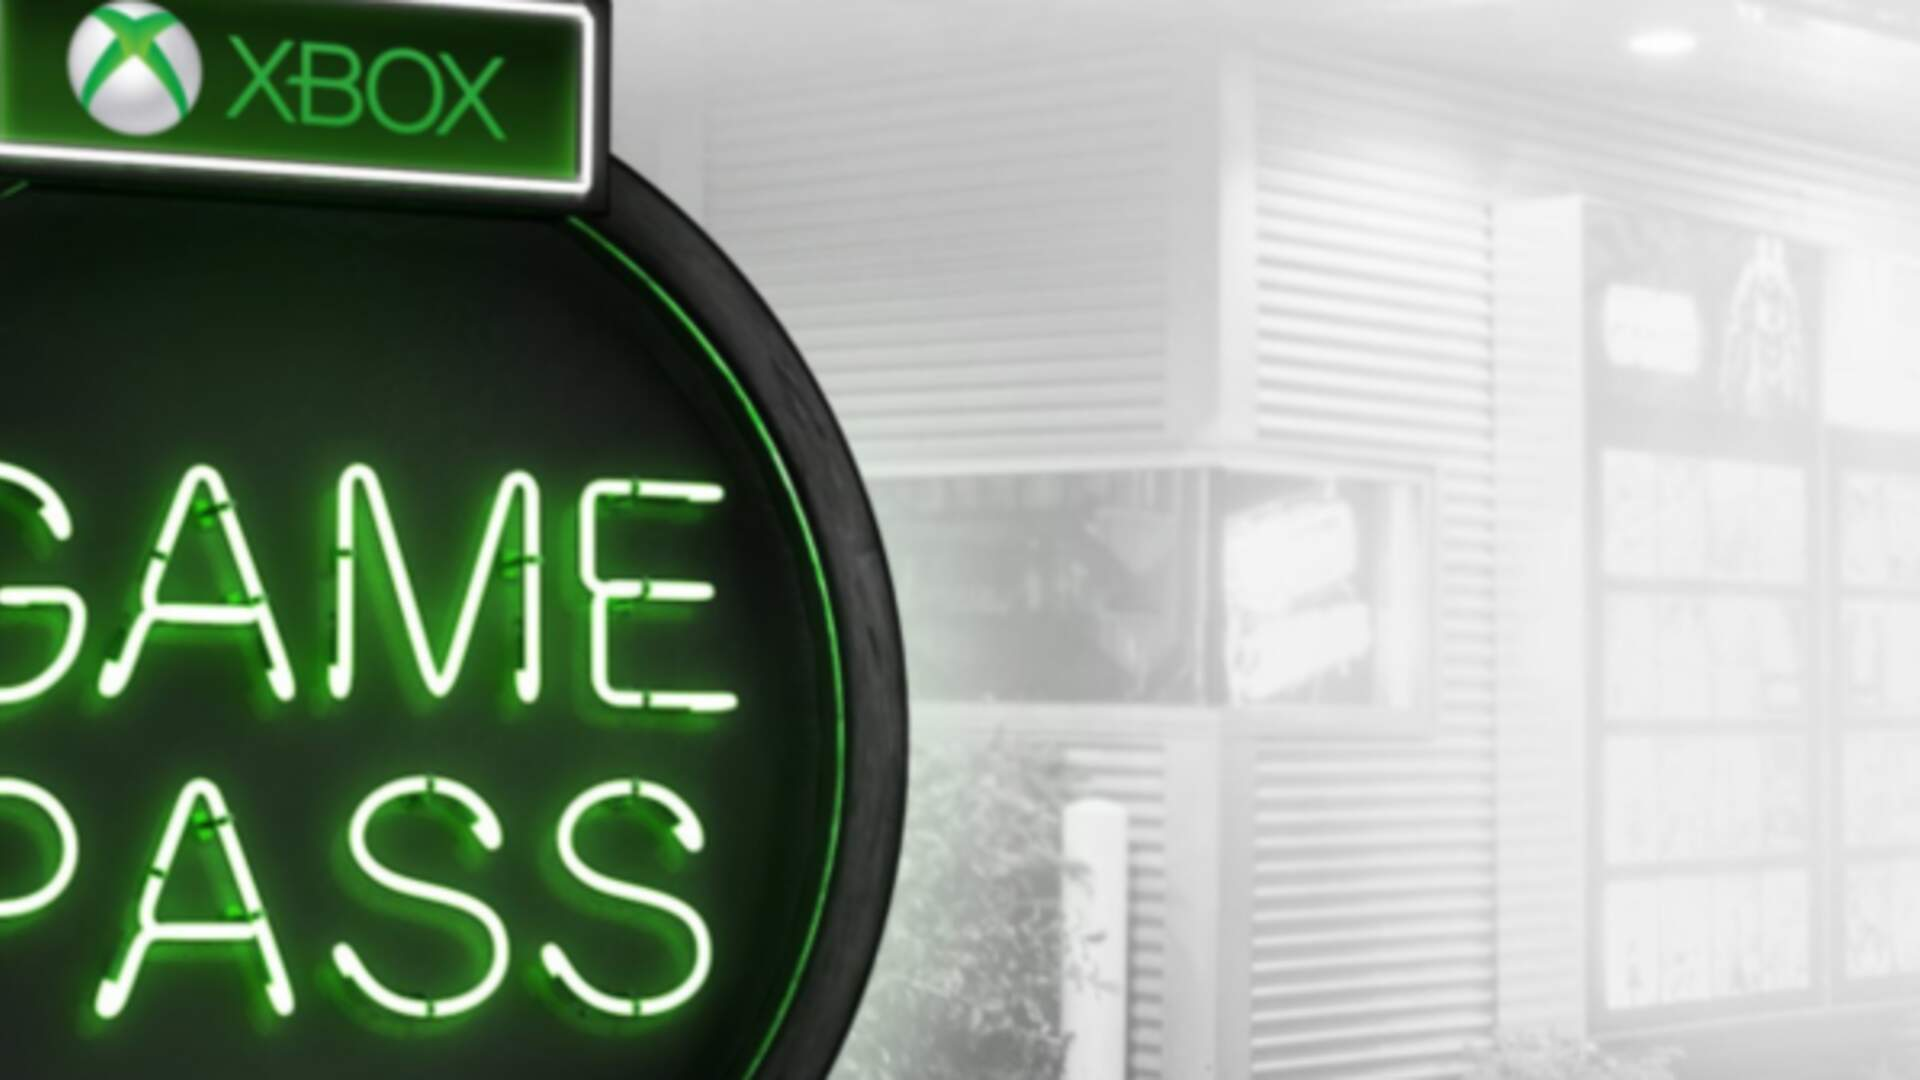 Xbox Game Pass, Microsoft's Netflix-Like Subscription Service, May Be Coming to PC